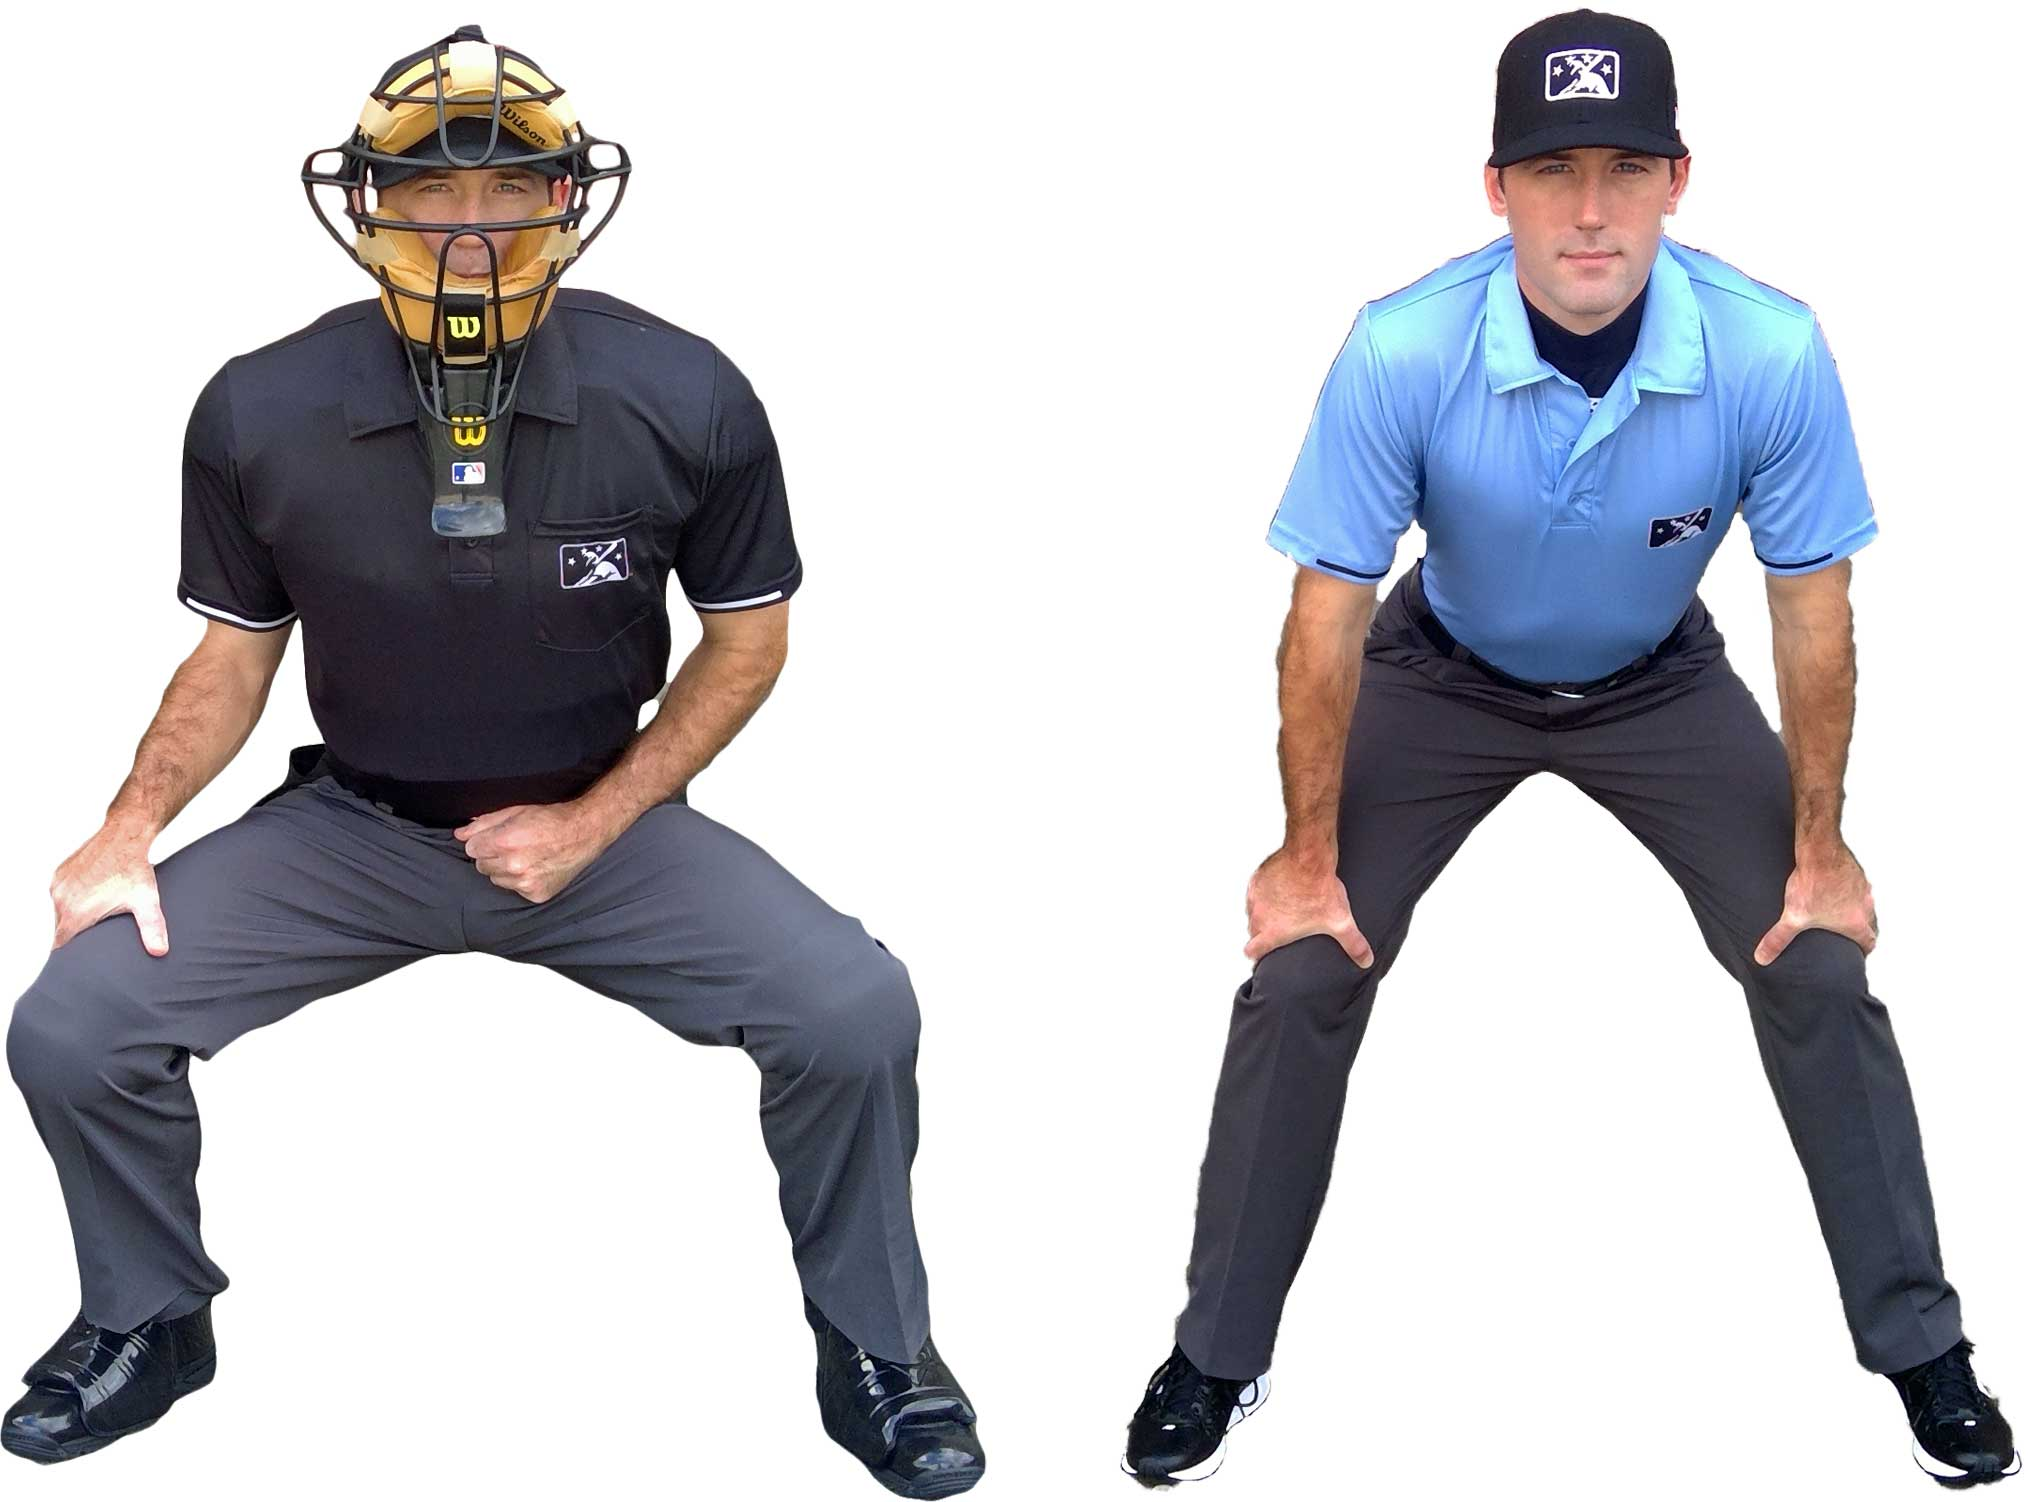 Full MiLB Umpire Uniform